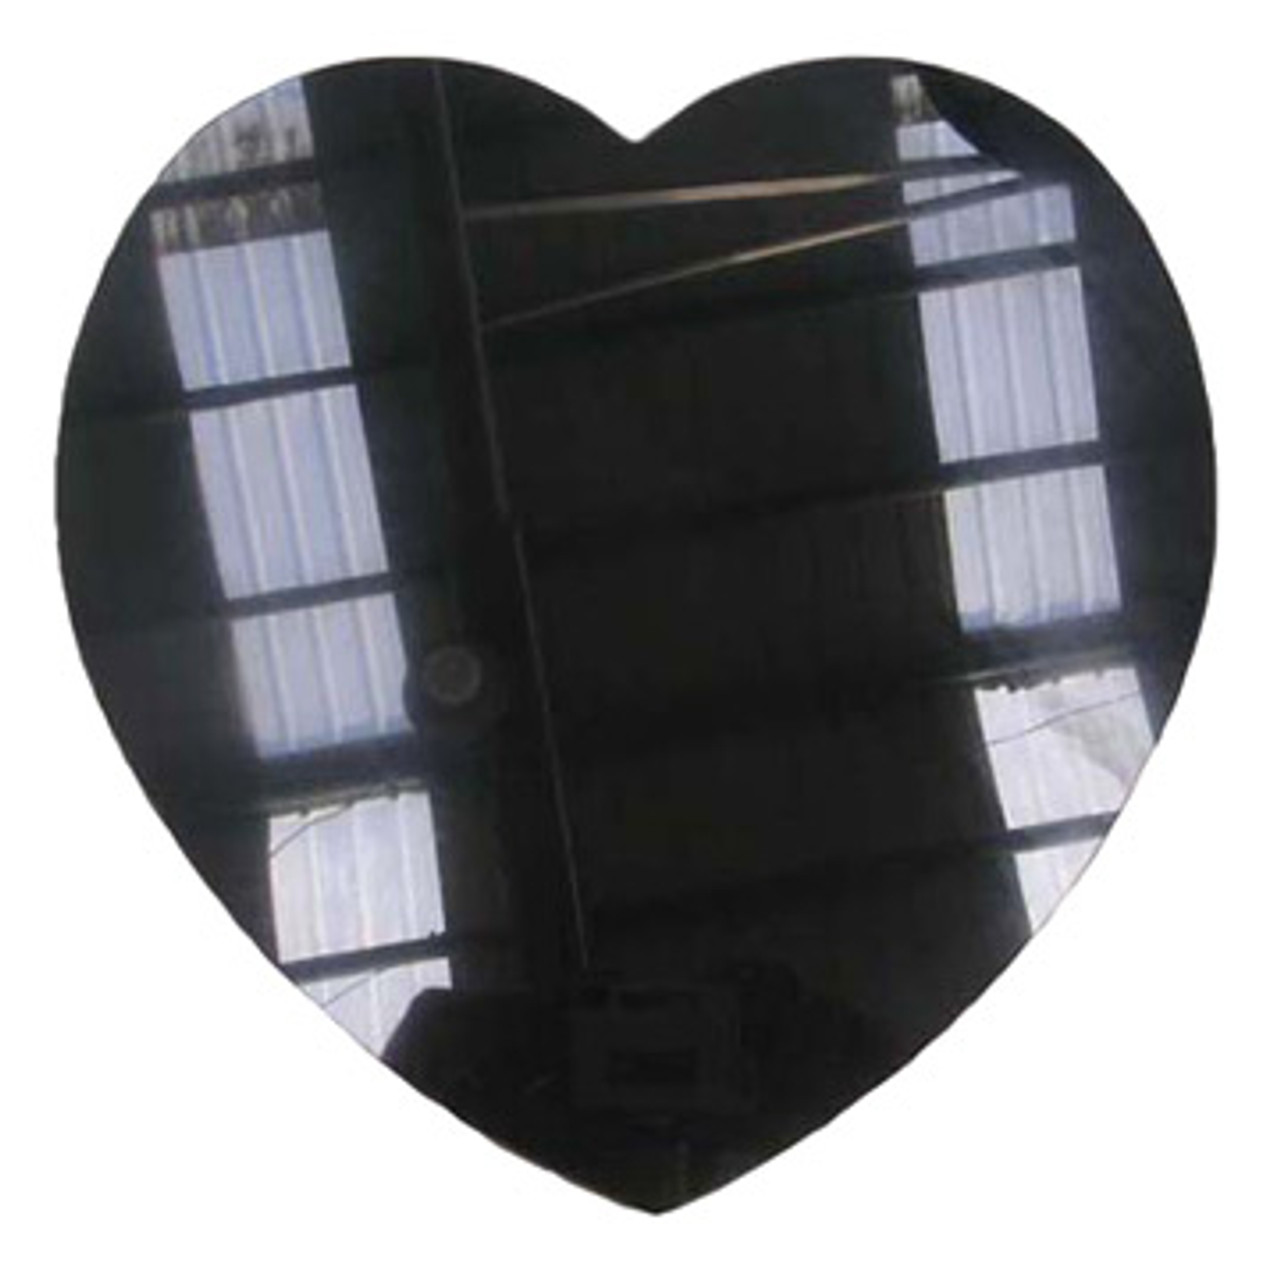 M-AB-10HeartlASP: LaserGrade Absolute Black Marble, 10 inch Heart x 8mm, ASP, All Surfaces Polished (6F)